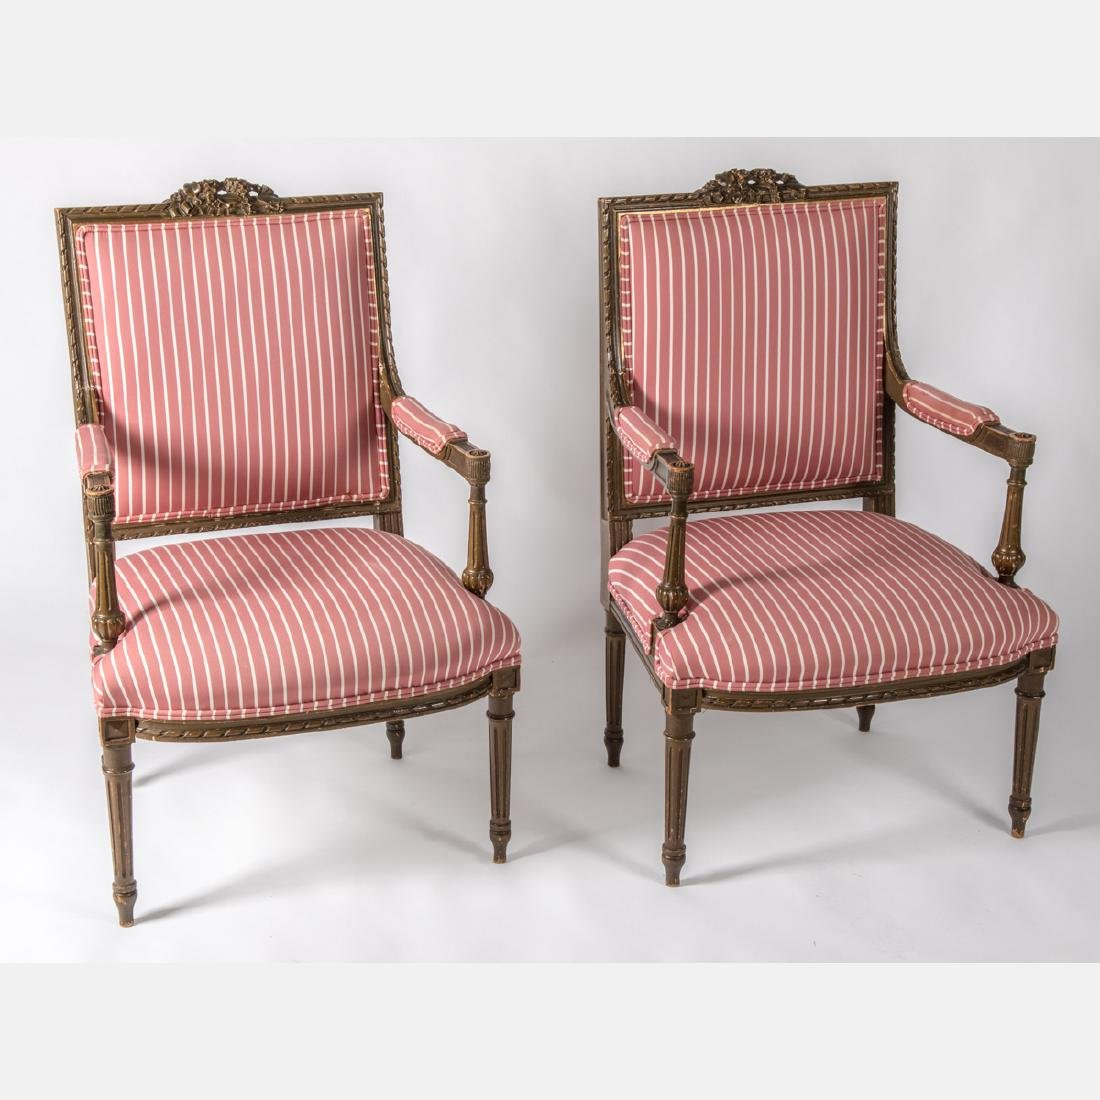 A Pair of Louis XVI Giltwood Bergere a la Reine, Early